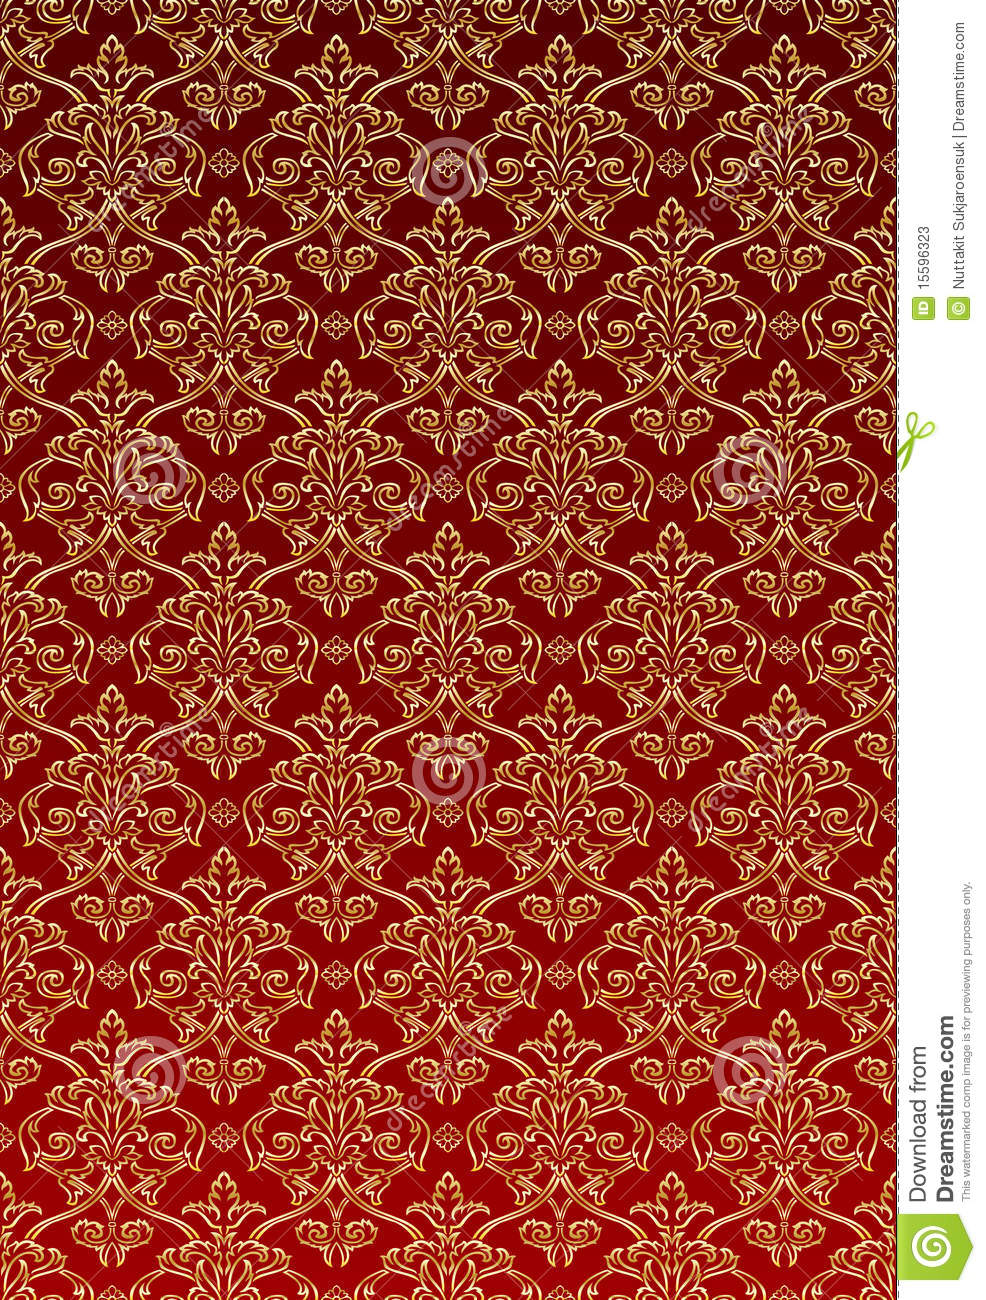 Black And White Victorian Wallpaper Gold Damask Style Wallpaper Stock Vector Illustration Of